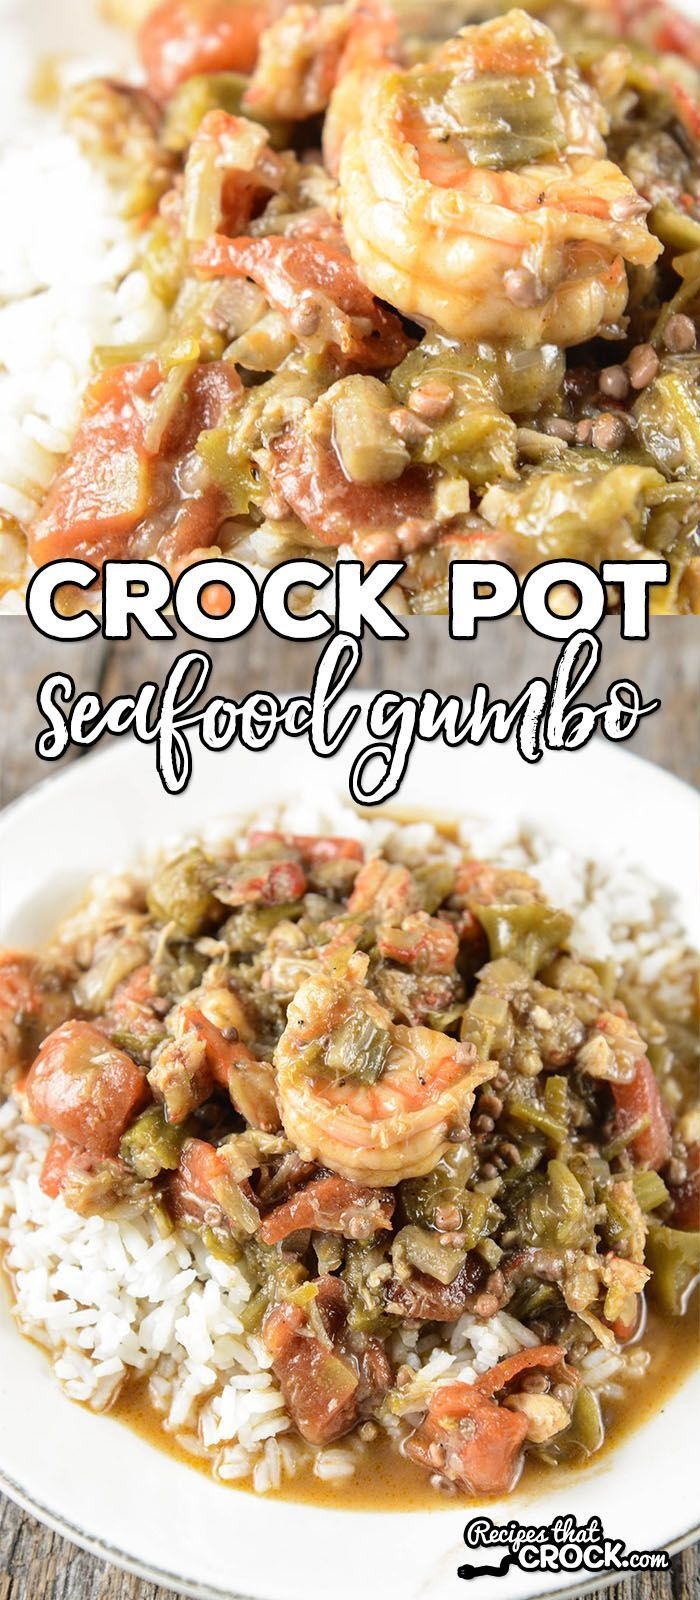 Are you looking for a delicious homemade gumbo recipe? Our Crock Pot Seafood Gumbo is a flavorful mixture of shrimp, crab and crawfish.